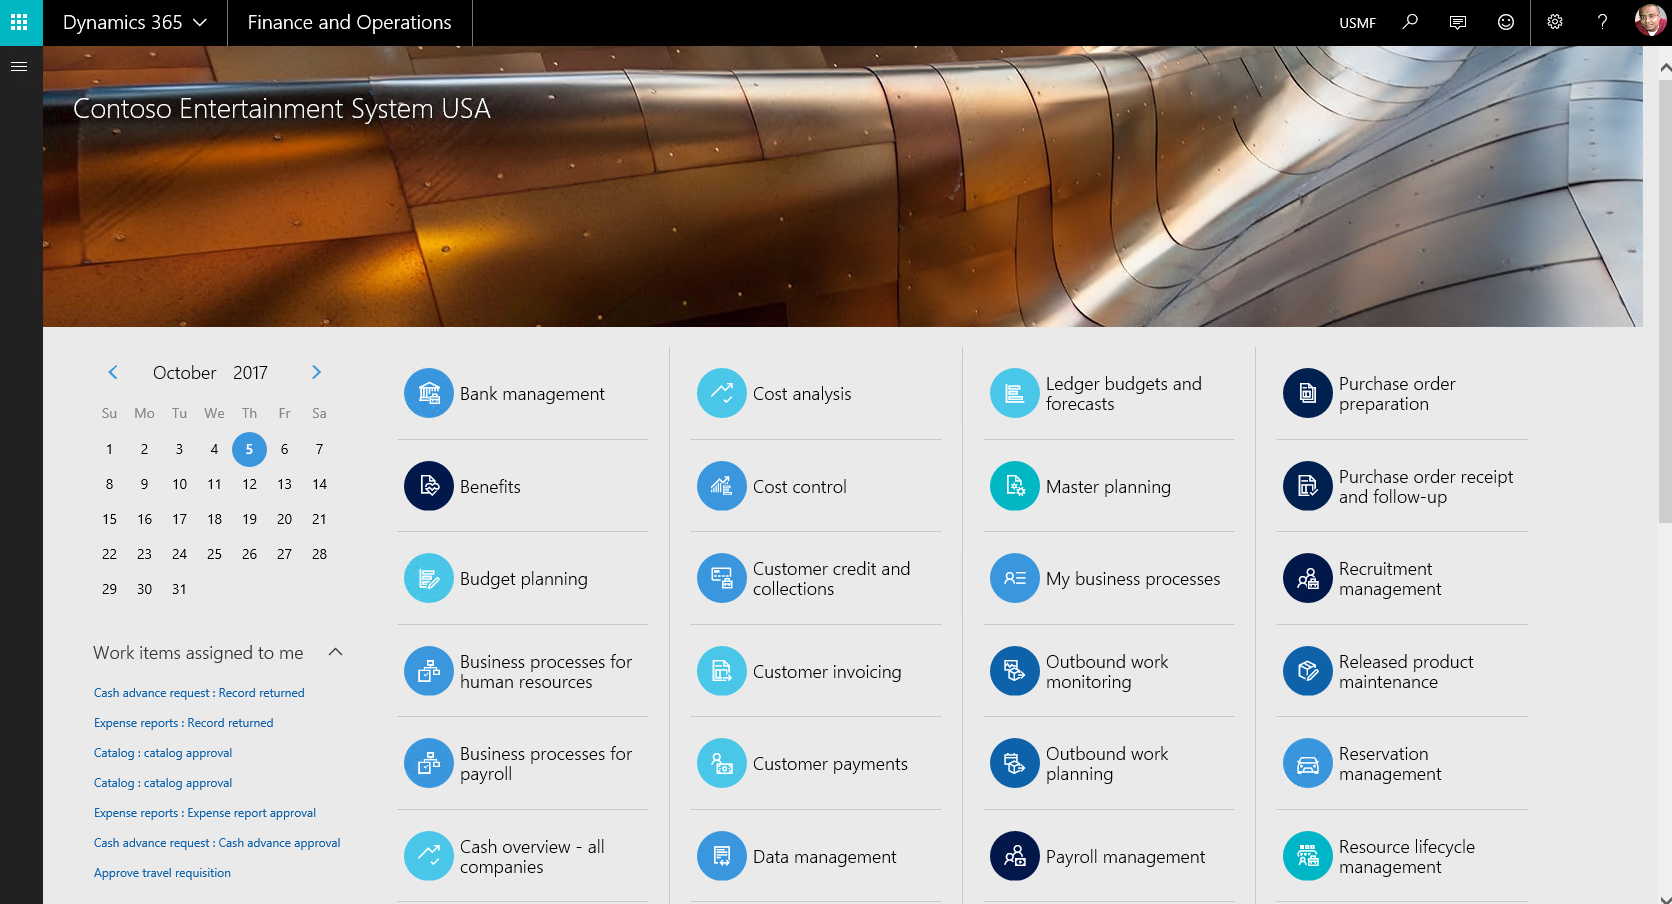 Looking at the Microsoft Dynamics 365 for Finance and